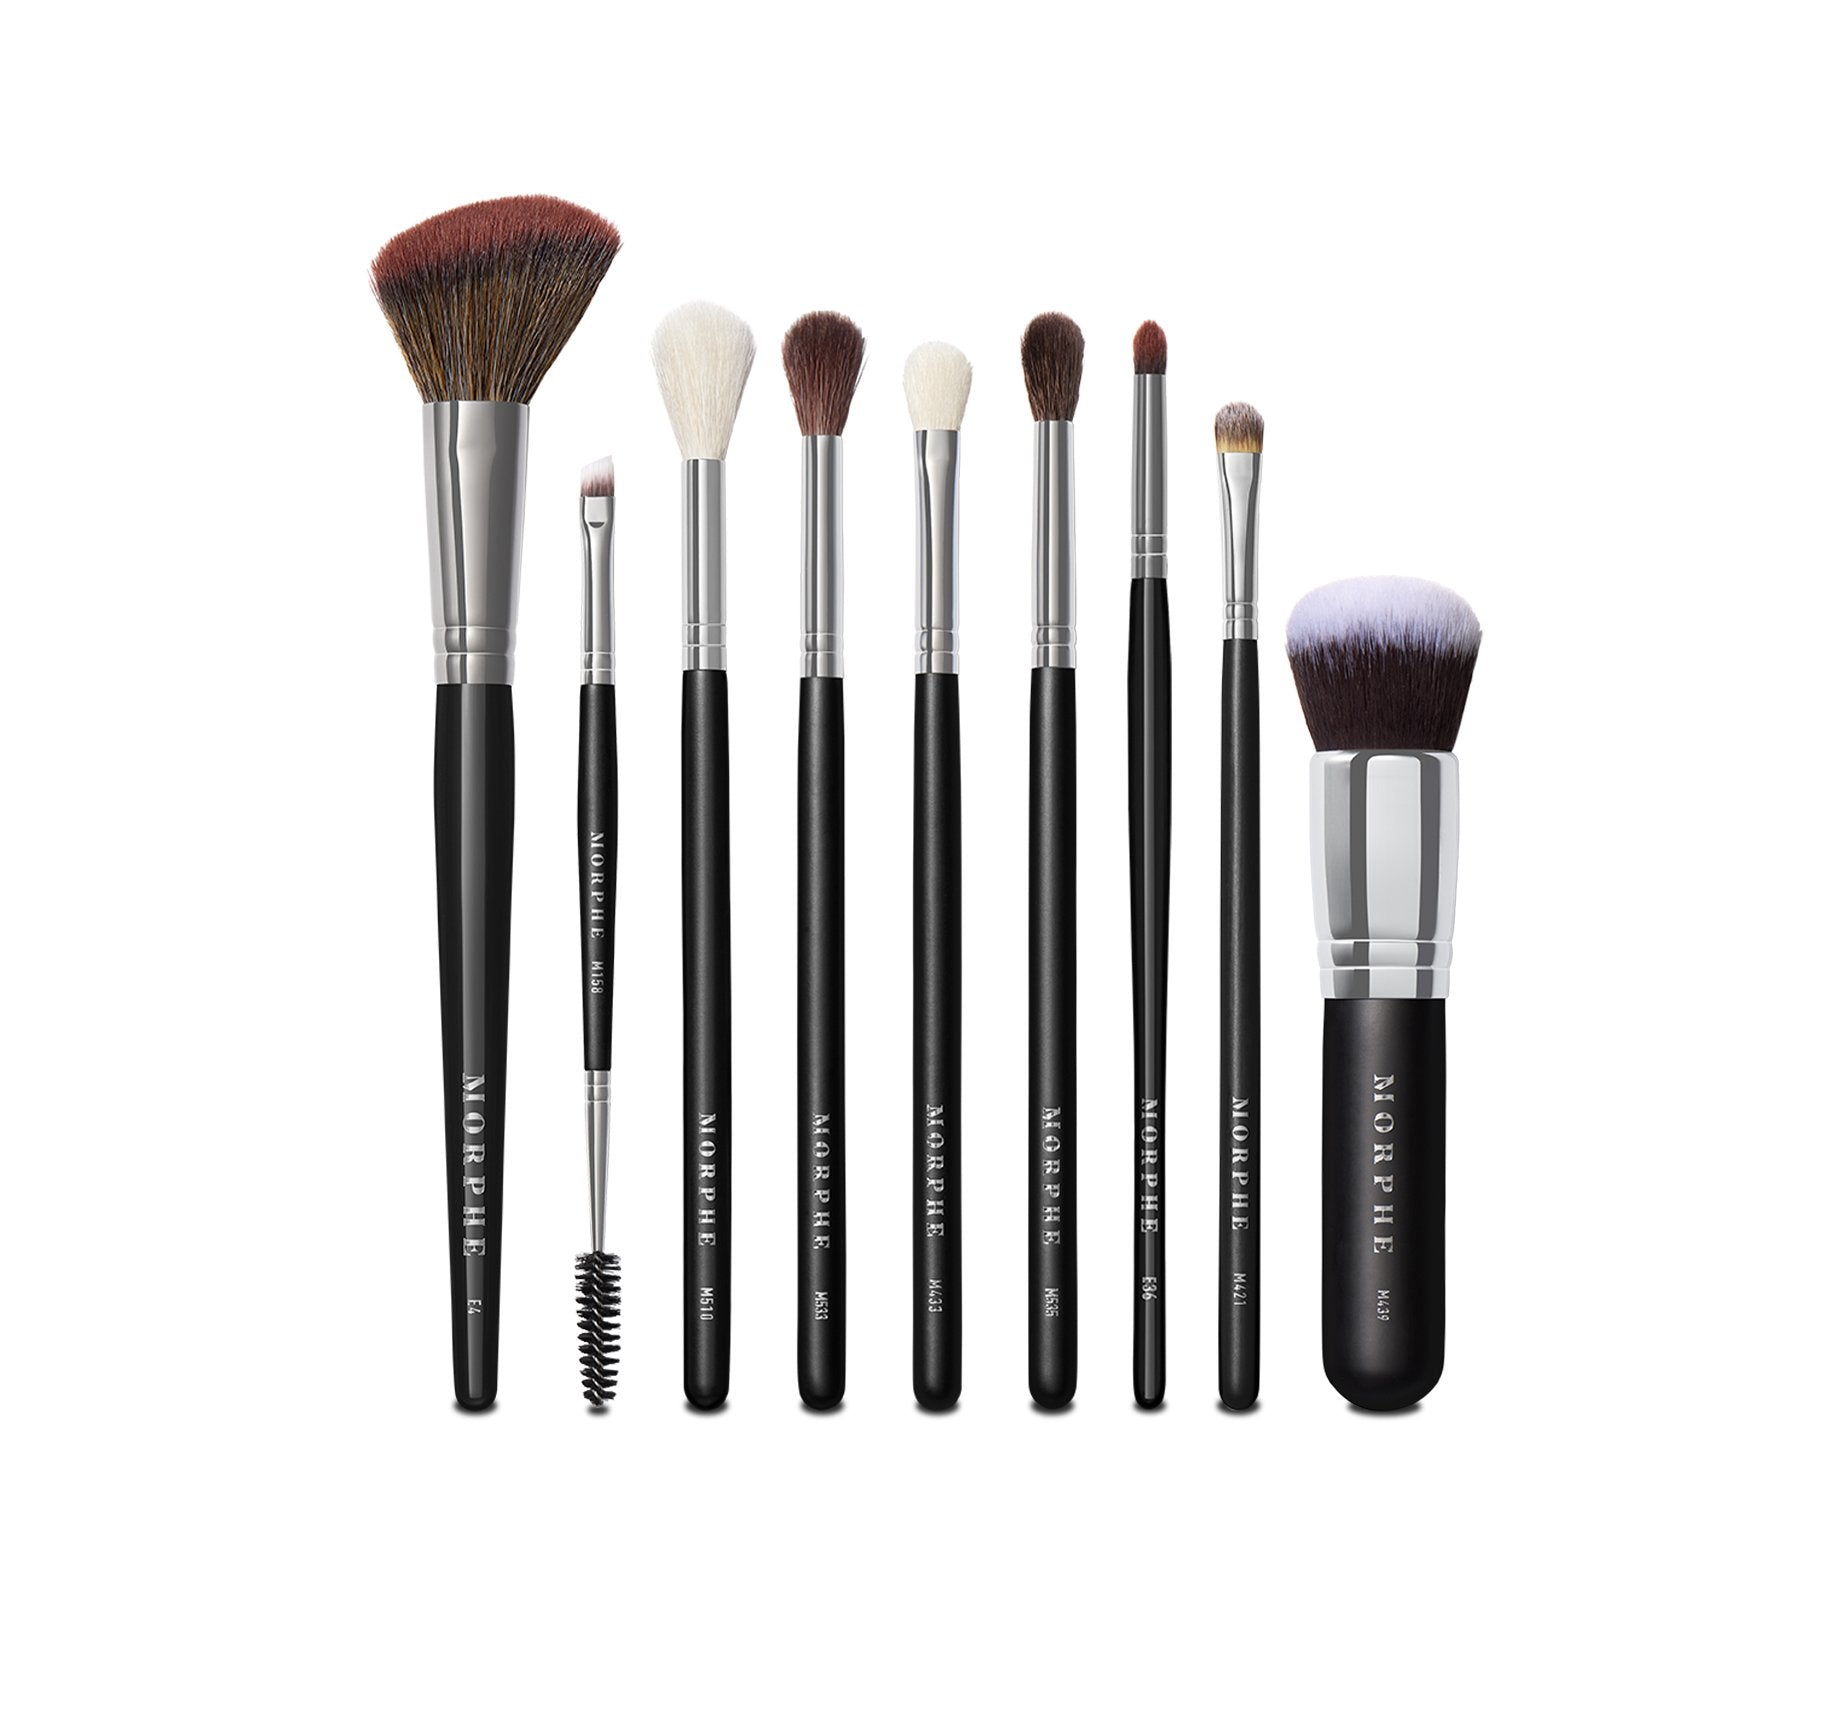 Morphe X Manny Mua Glam Brush Collection ✅ browse our daily deals for even more savings! morphe x manny mua glam brush collection